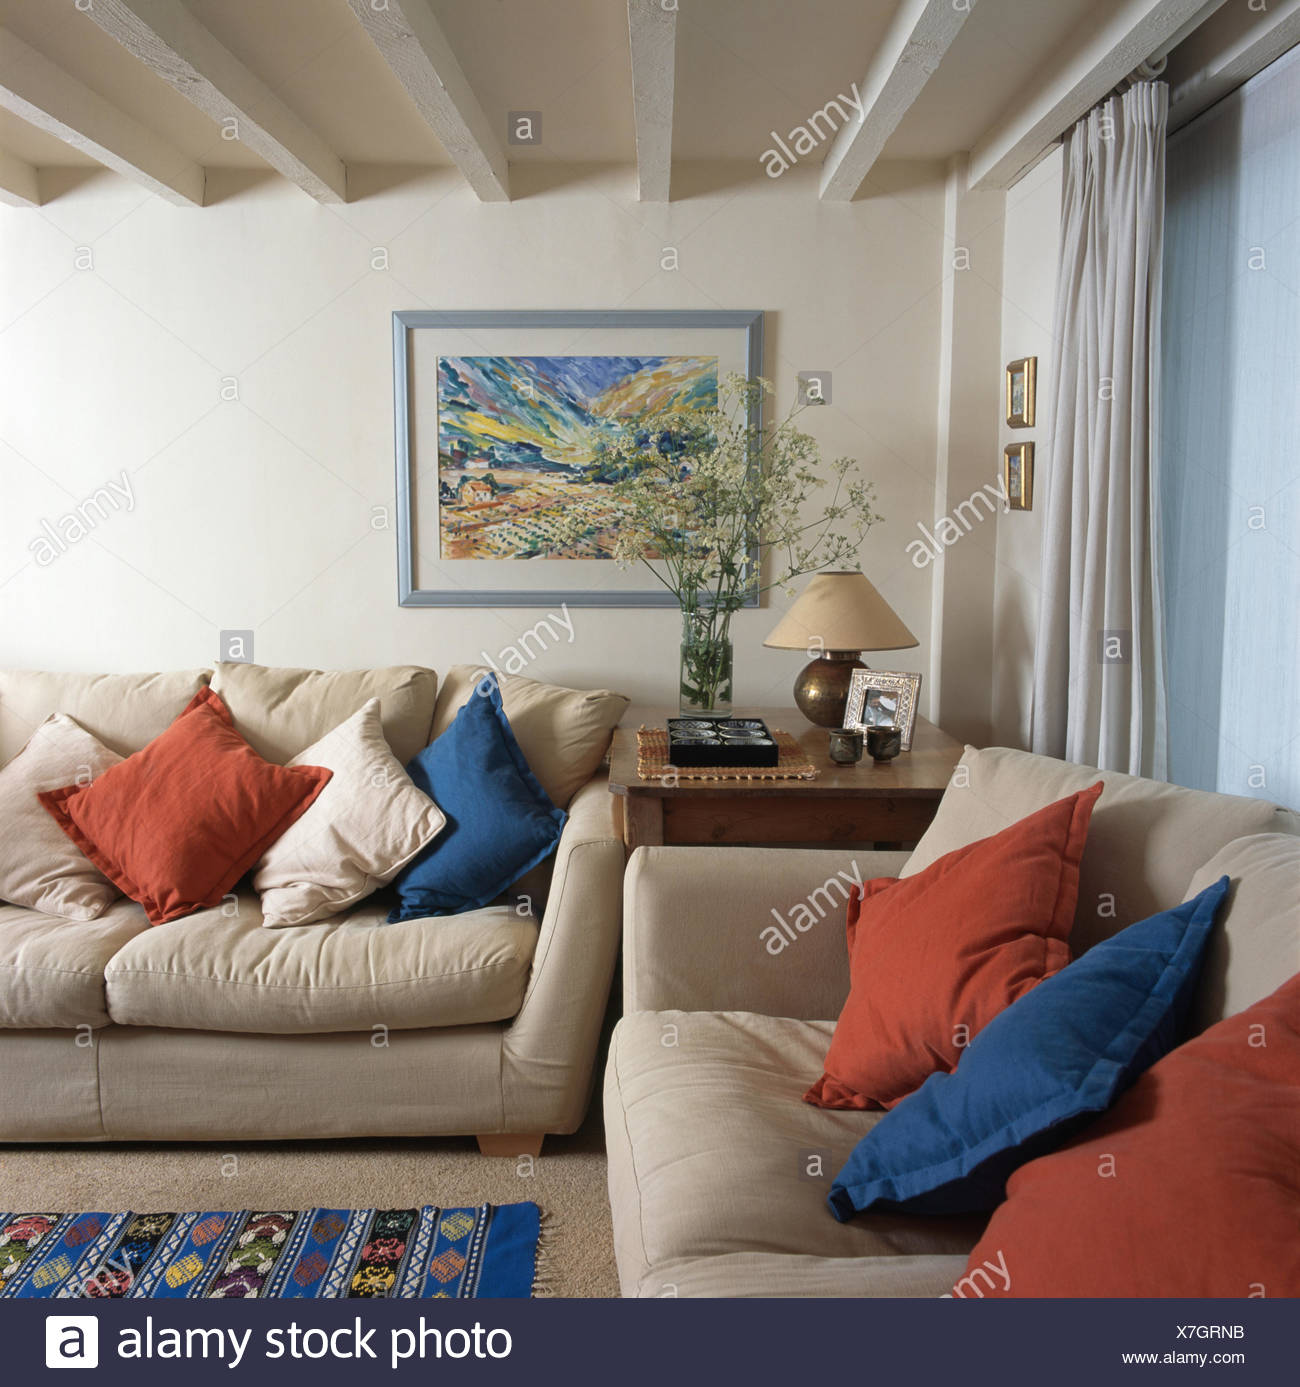 Blue and red cushions on cream sofas in a traditional living room with a lime washed beamed ceiling - Stock Image